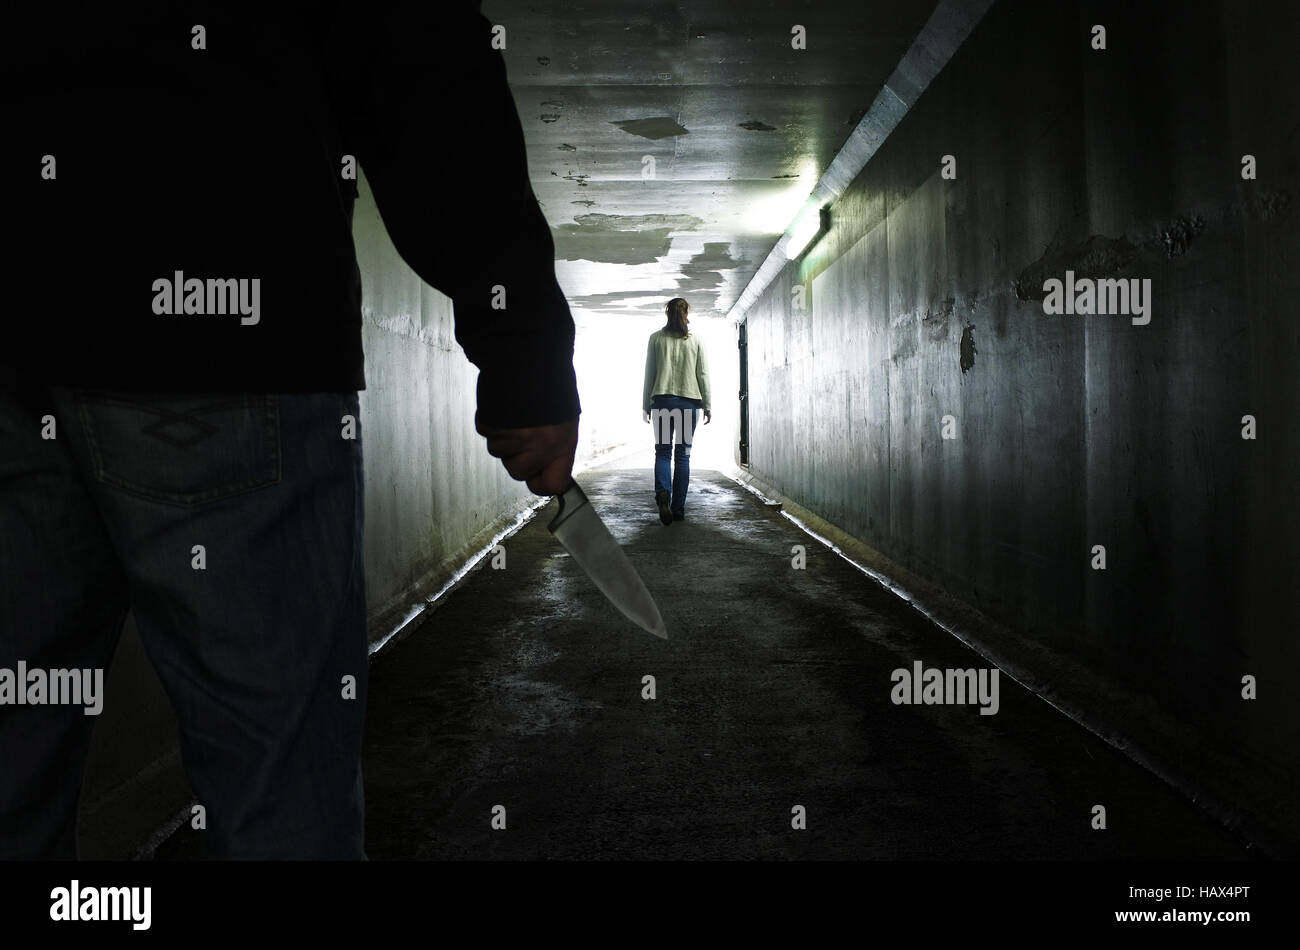 Silhouette of a man carry a knife and follows a young woman in a dark tunnel. Violence against women concept. Real - Stock Image